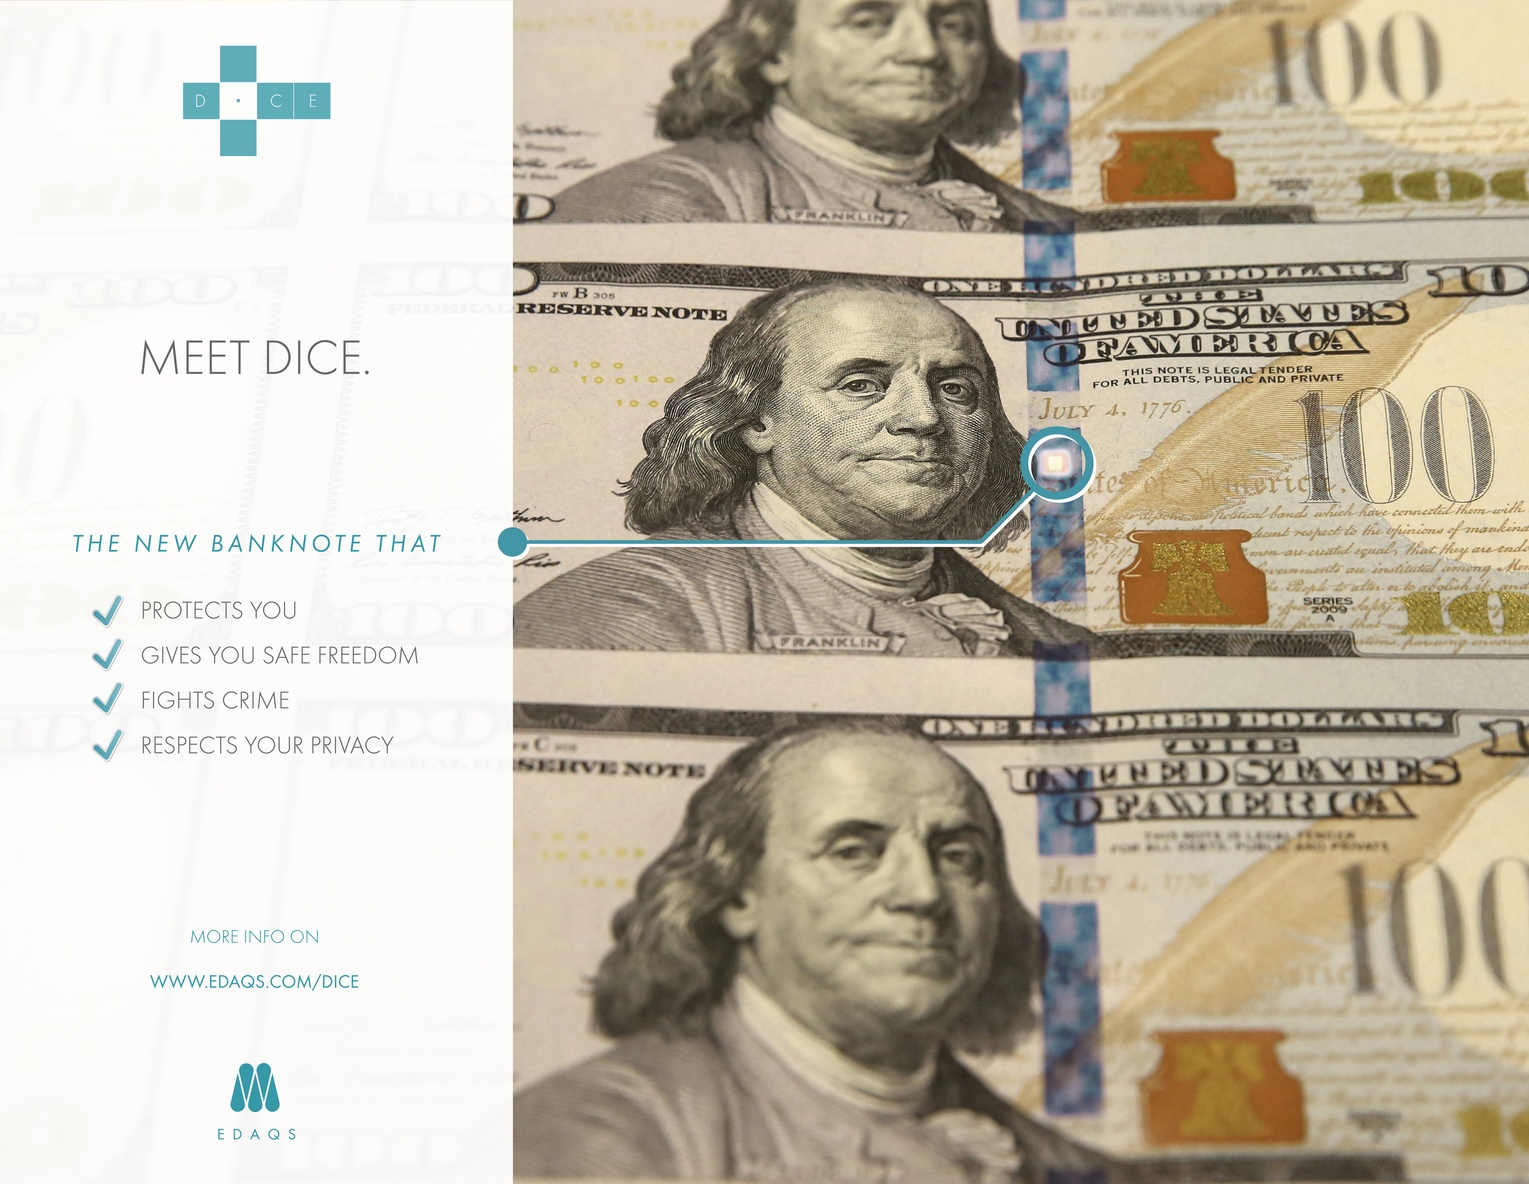 DICE – the new banknote technology that protects citizen and fights the crime